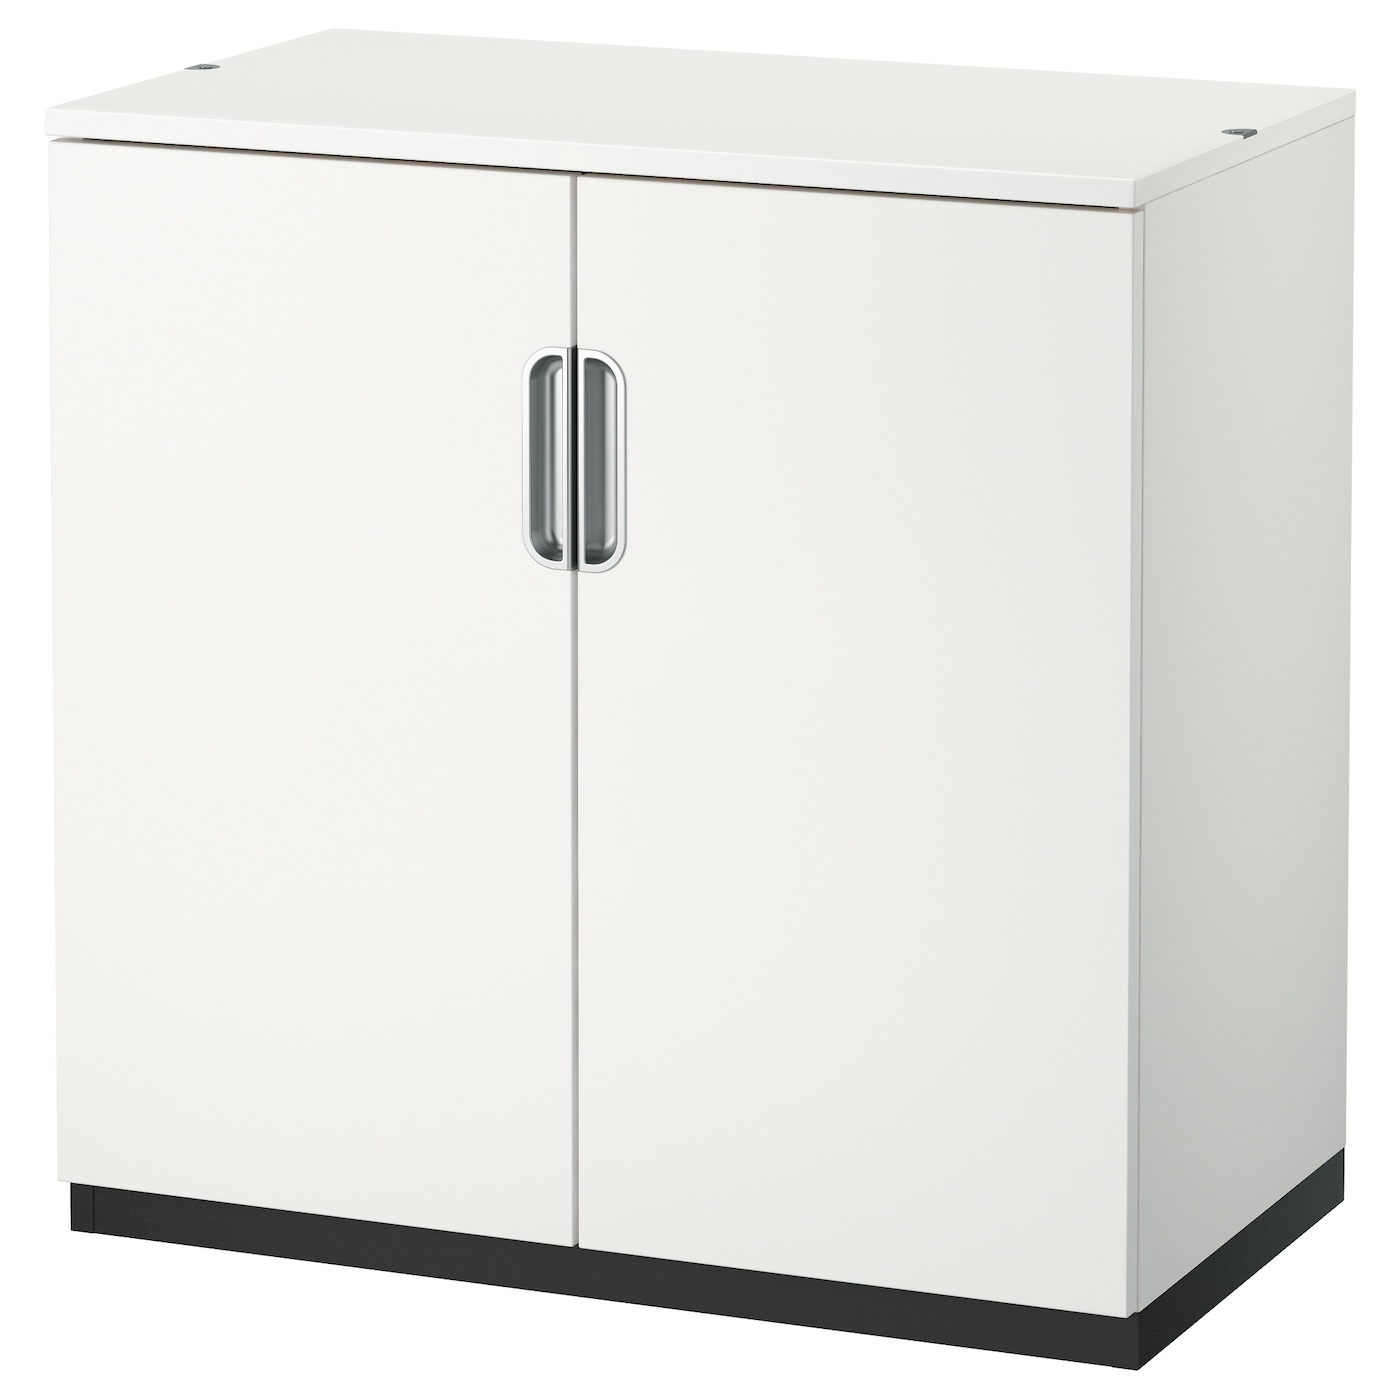 ikea storage cabinets galant cabinet with doors white 80 x 80 cm ikea 17742